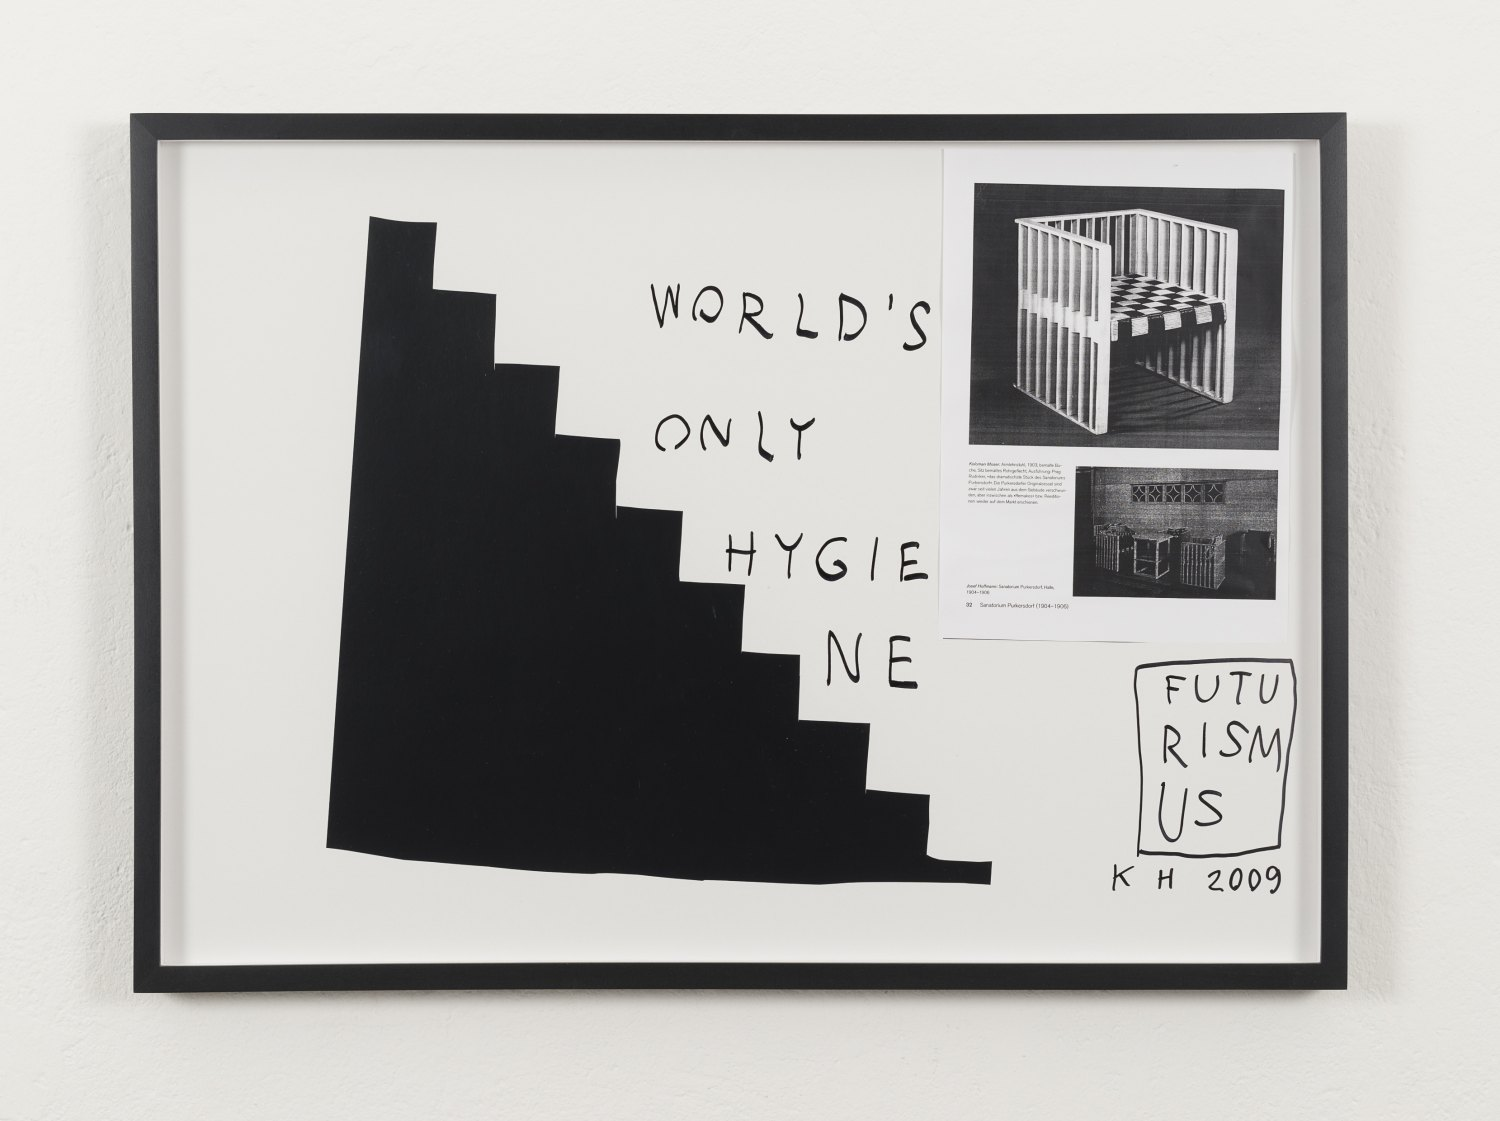 Karl Holmqvist Untitled (WORLD'S ONLY HYGIENE), 2009 Framed collage, 52.5 × 72.5 × 4 cm